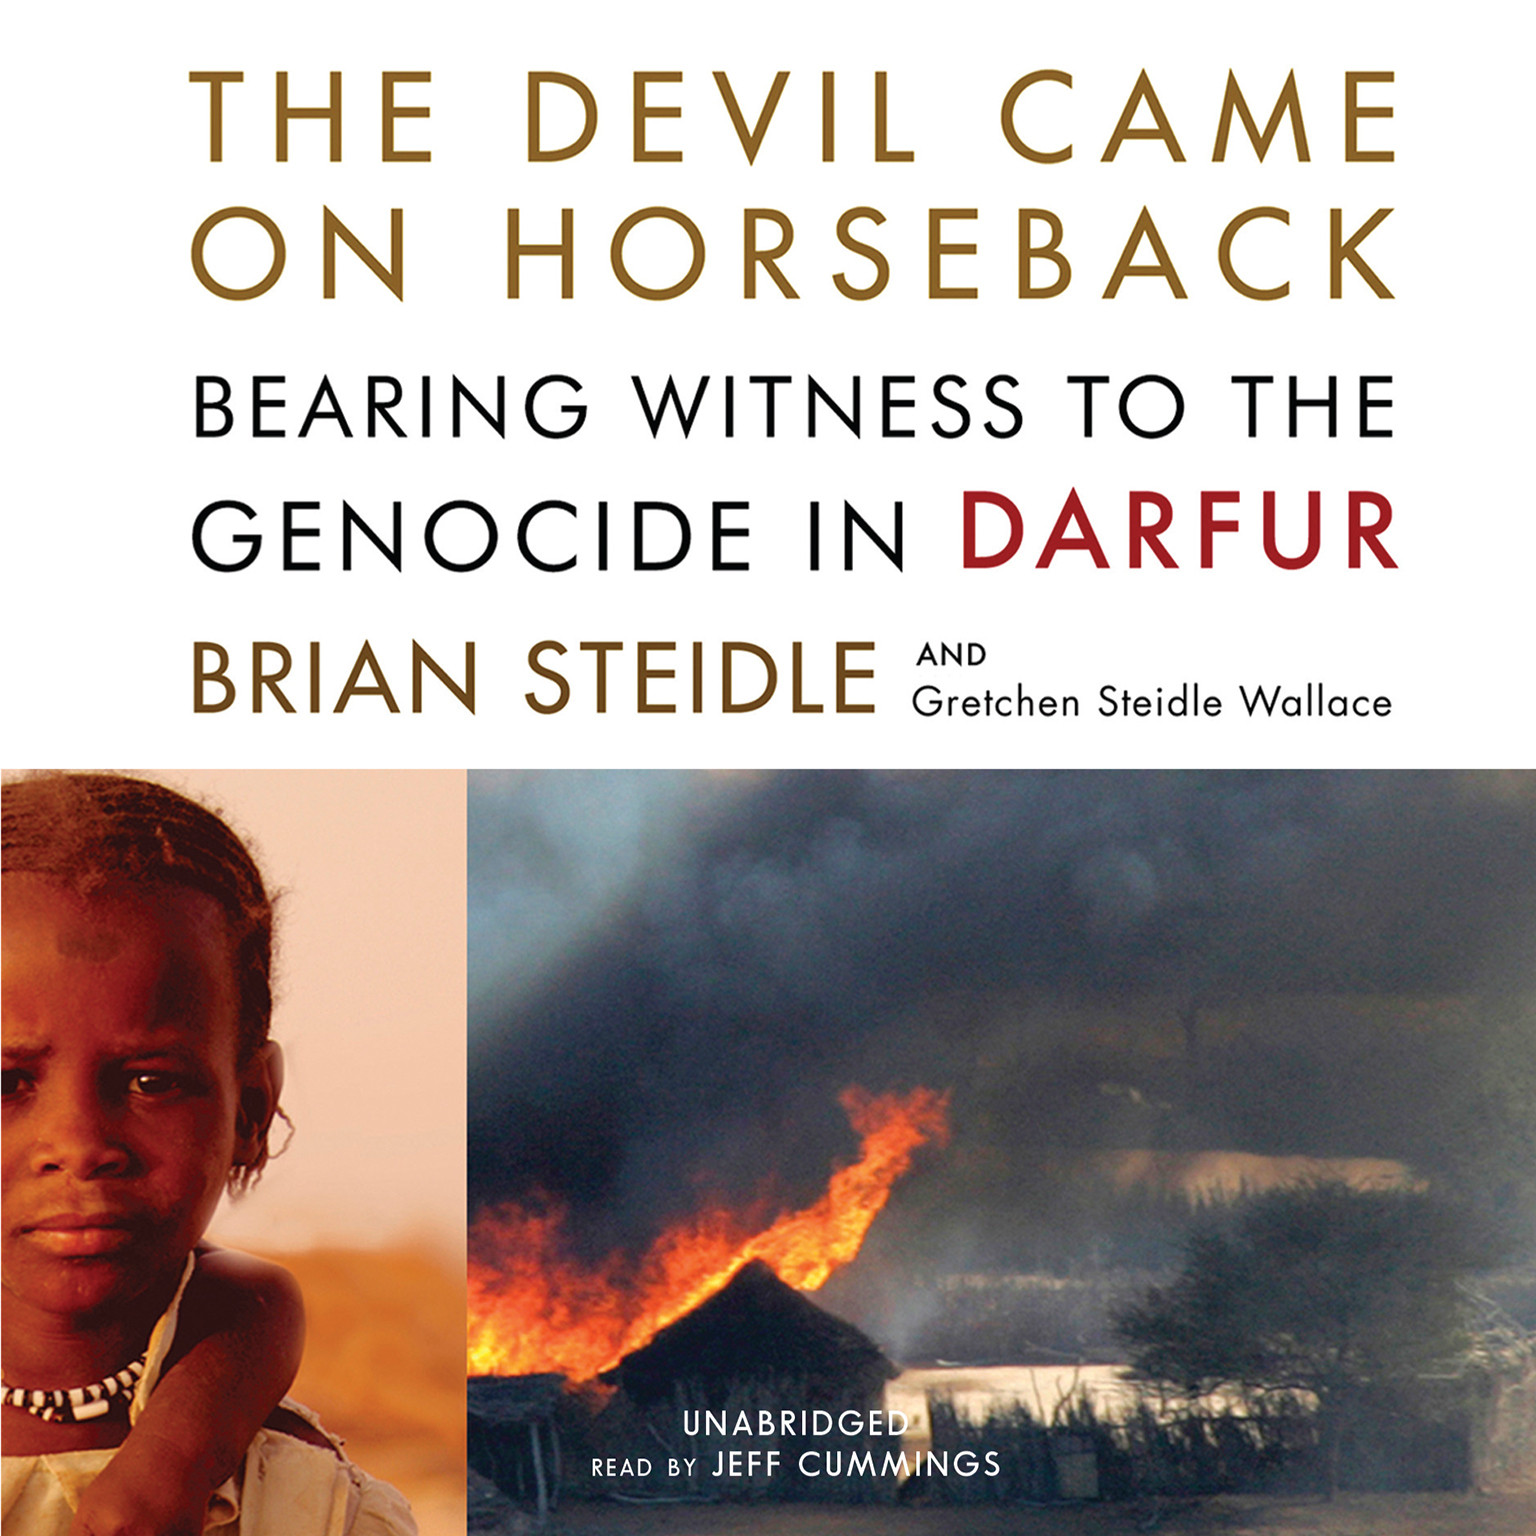 Printable The Devil Came on Horseback: Bearing Witness to the Genocide in Darfur Audiobook Cover Art